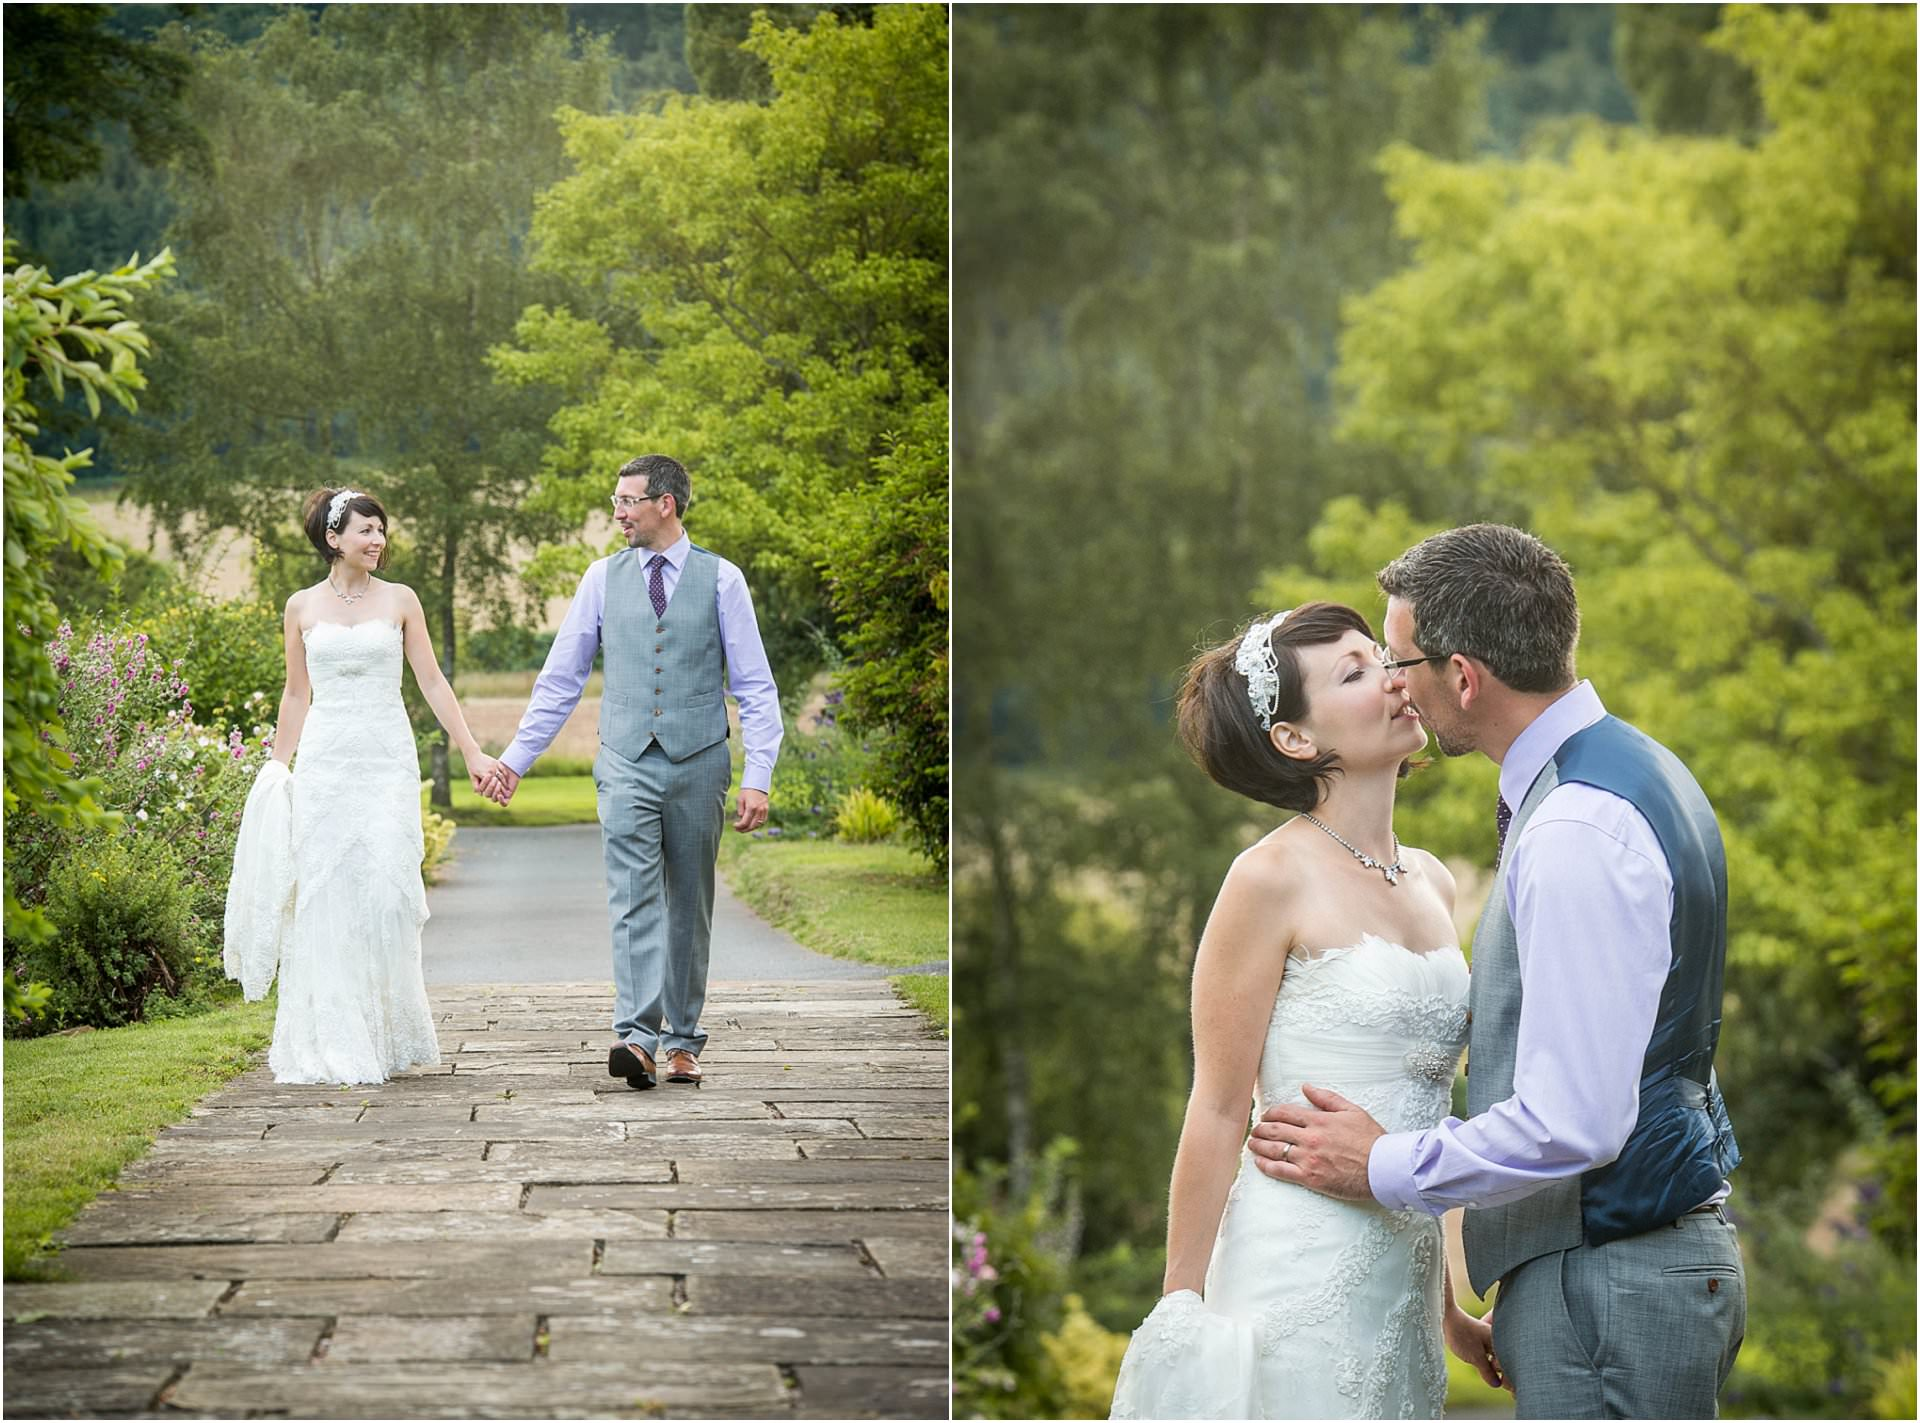 Brinsop Court Wedding Photographer Herefordshire